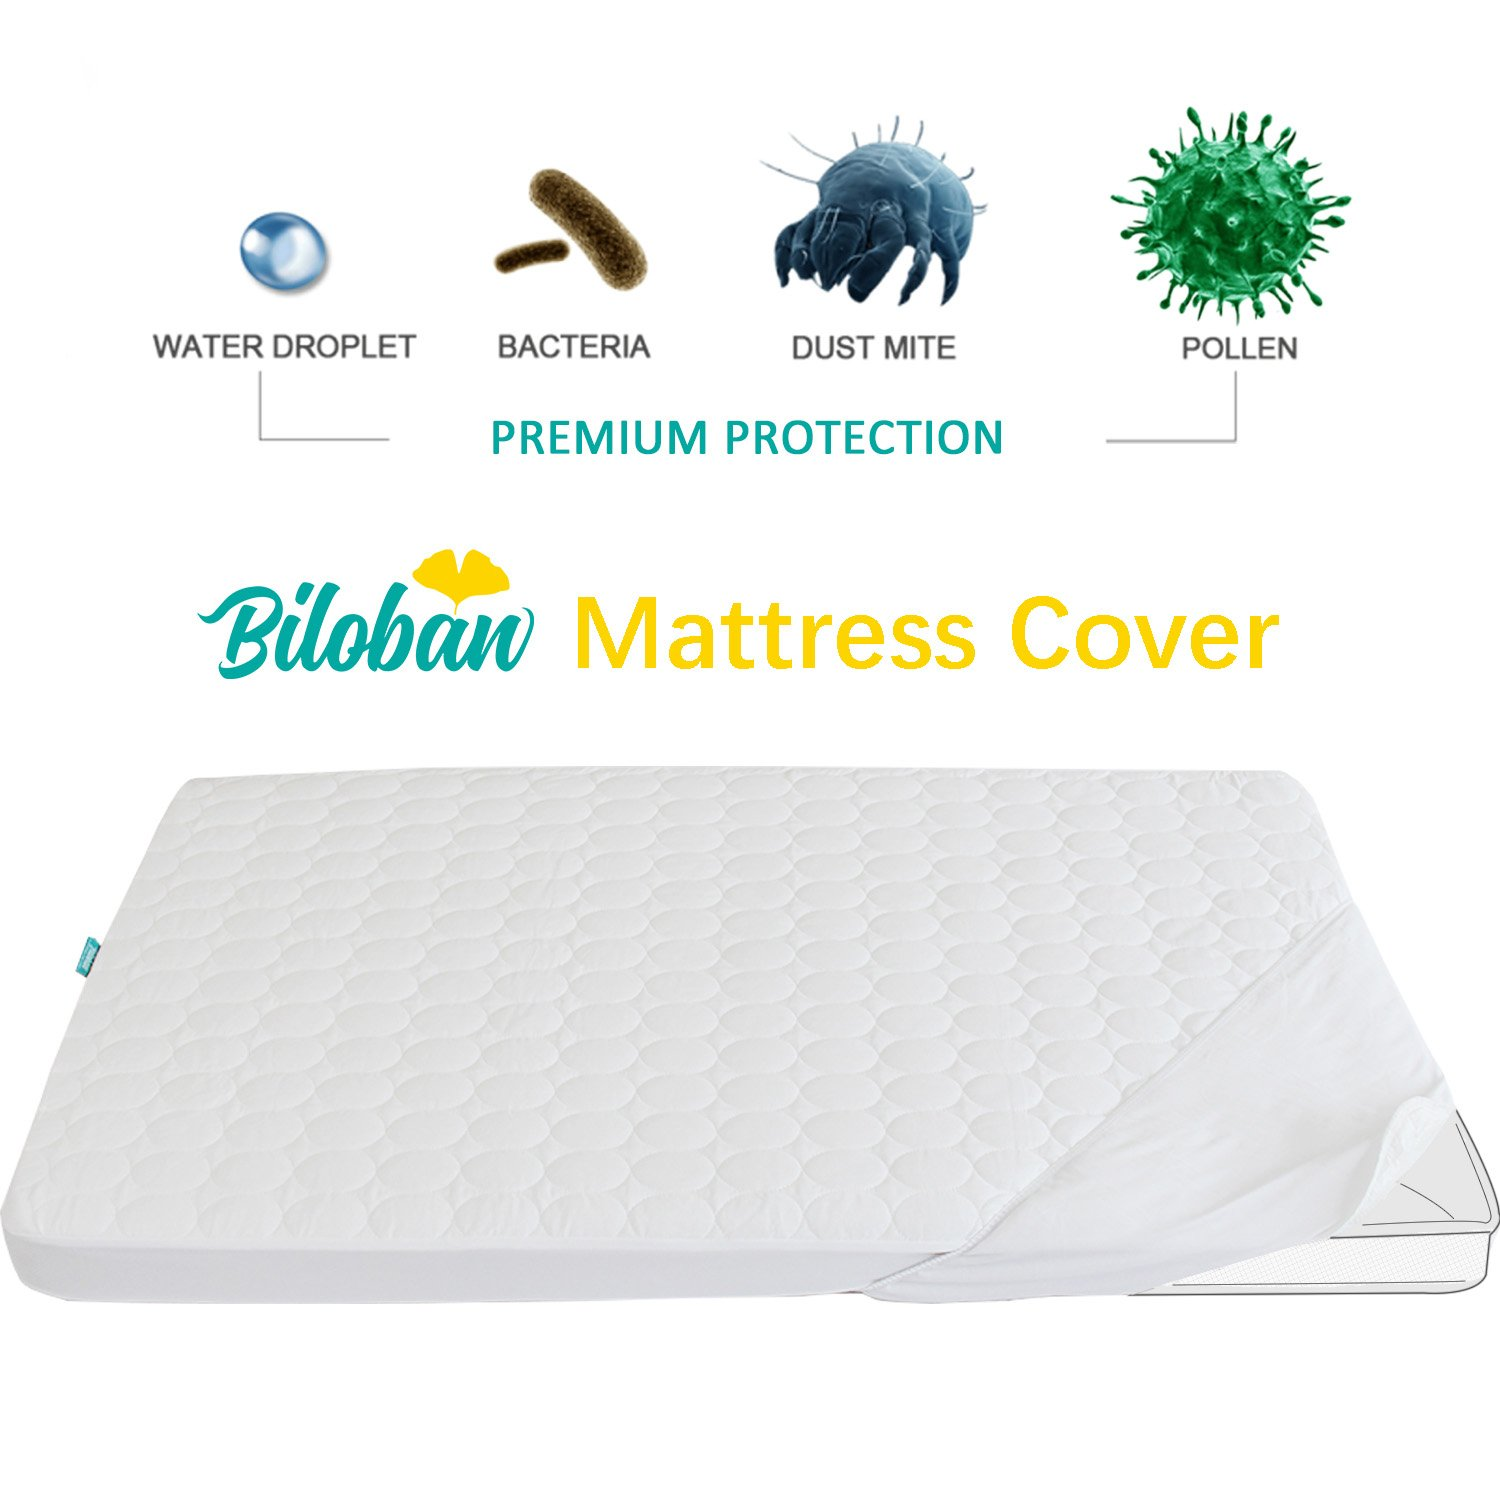 Biloban Pack N Play Mattress Pad - Comfort Cotton Surface, 100% Waterproof, 39